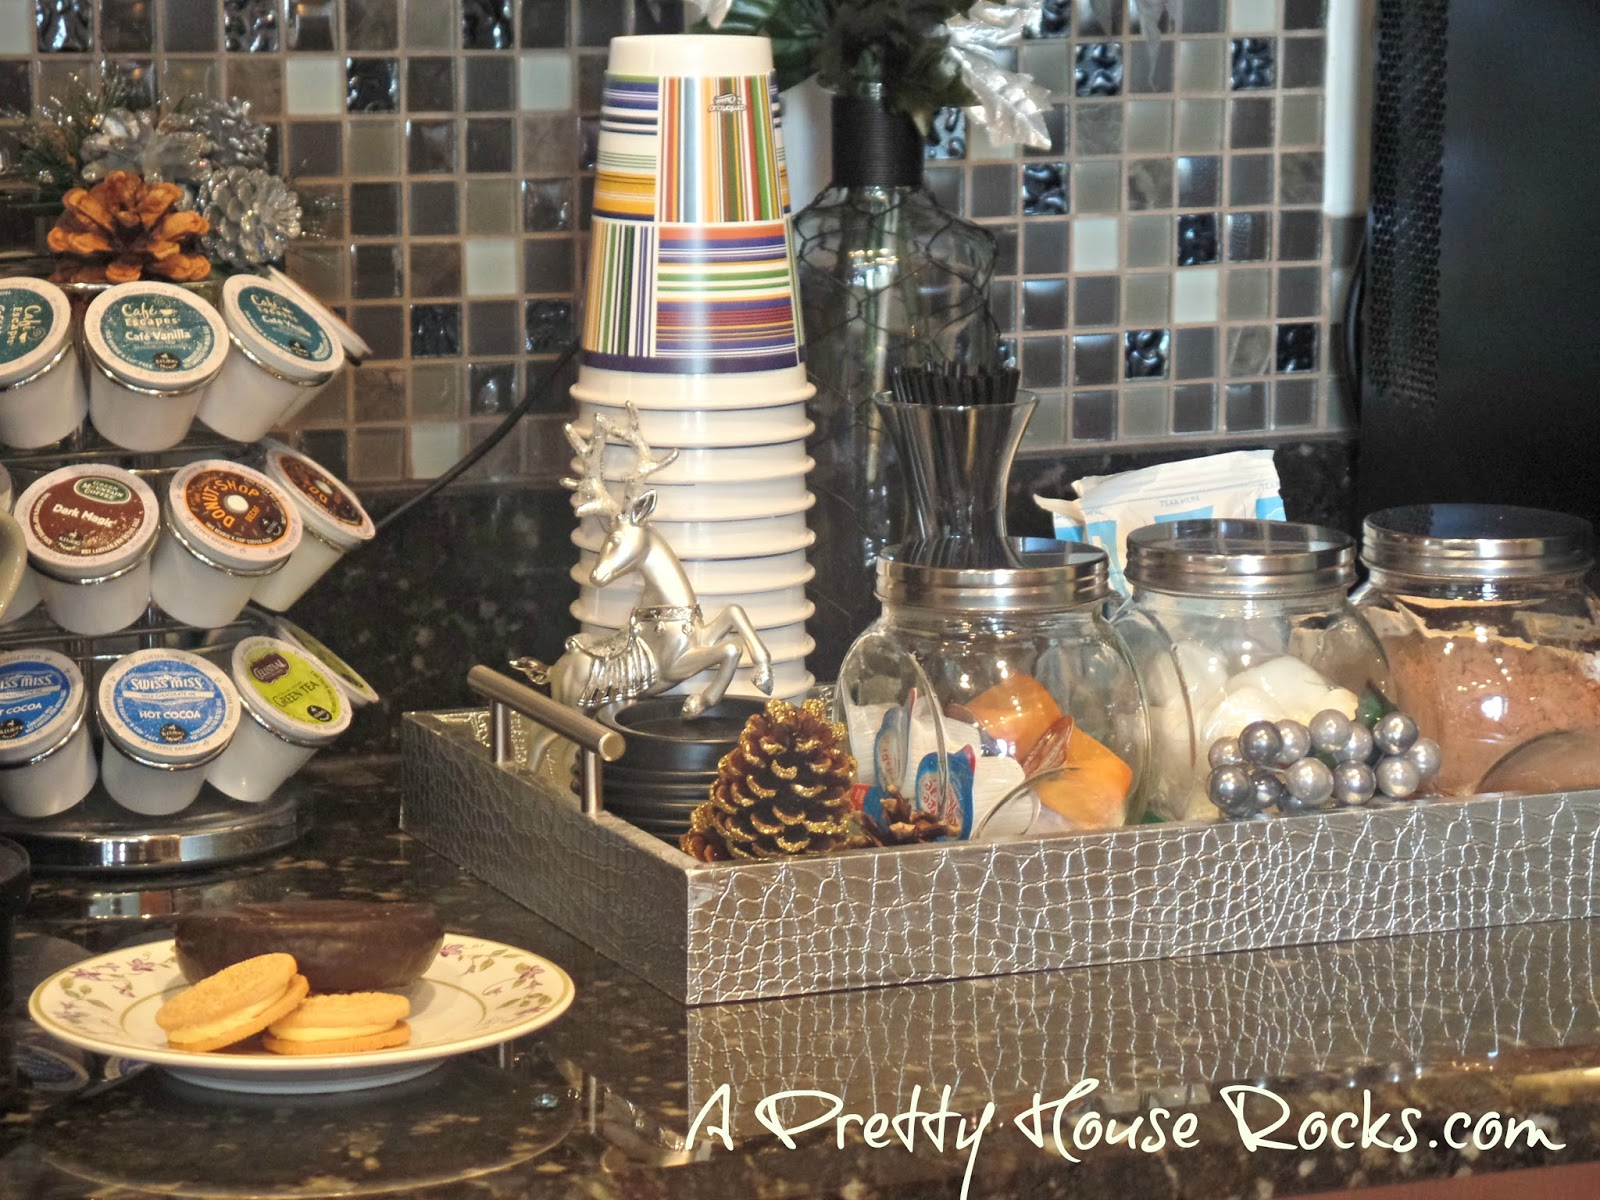 a pretty house rocks home decorating blog 2015 so we have all seen various pics depicting inviting and inspiring coffee and hot cocoa stations i so want that it s the holidays i love and need coffee